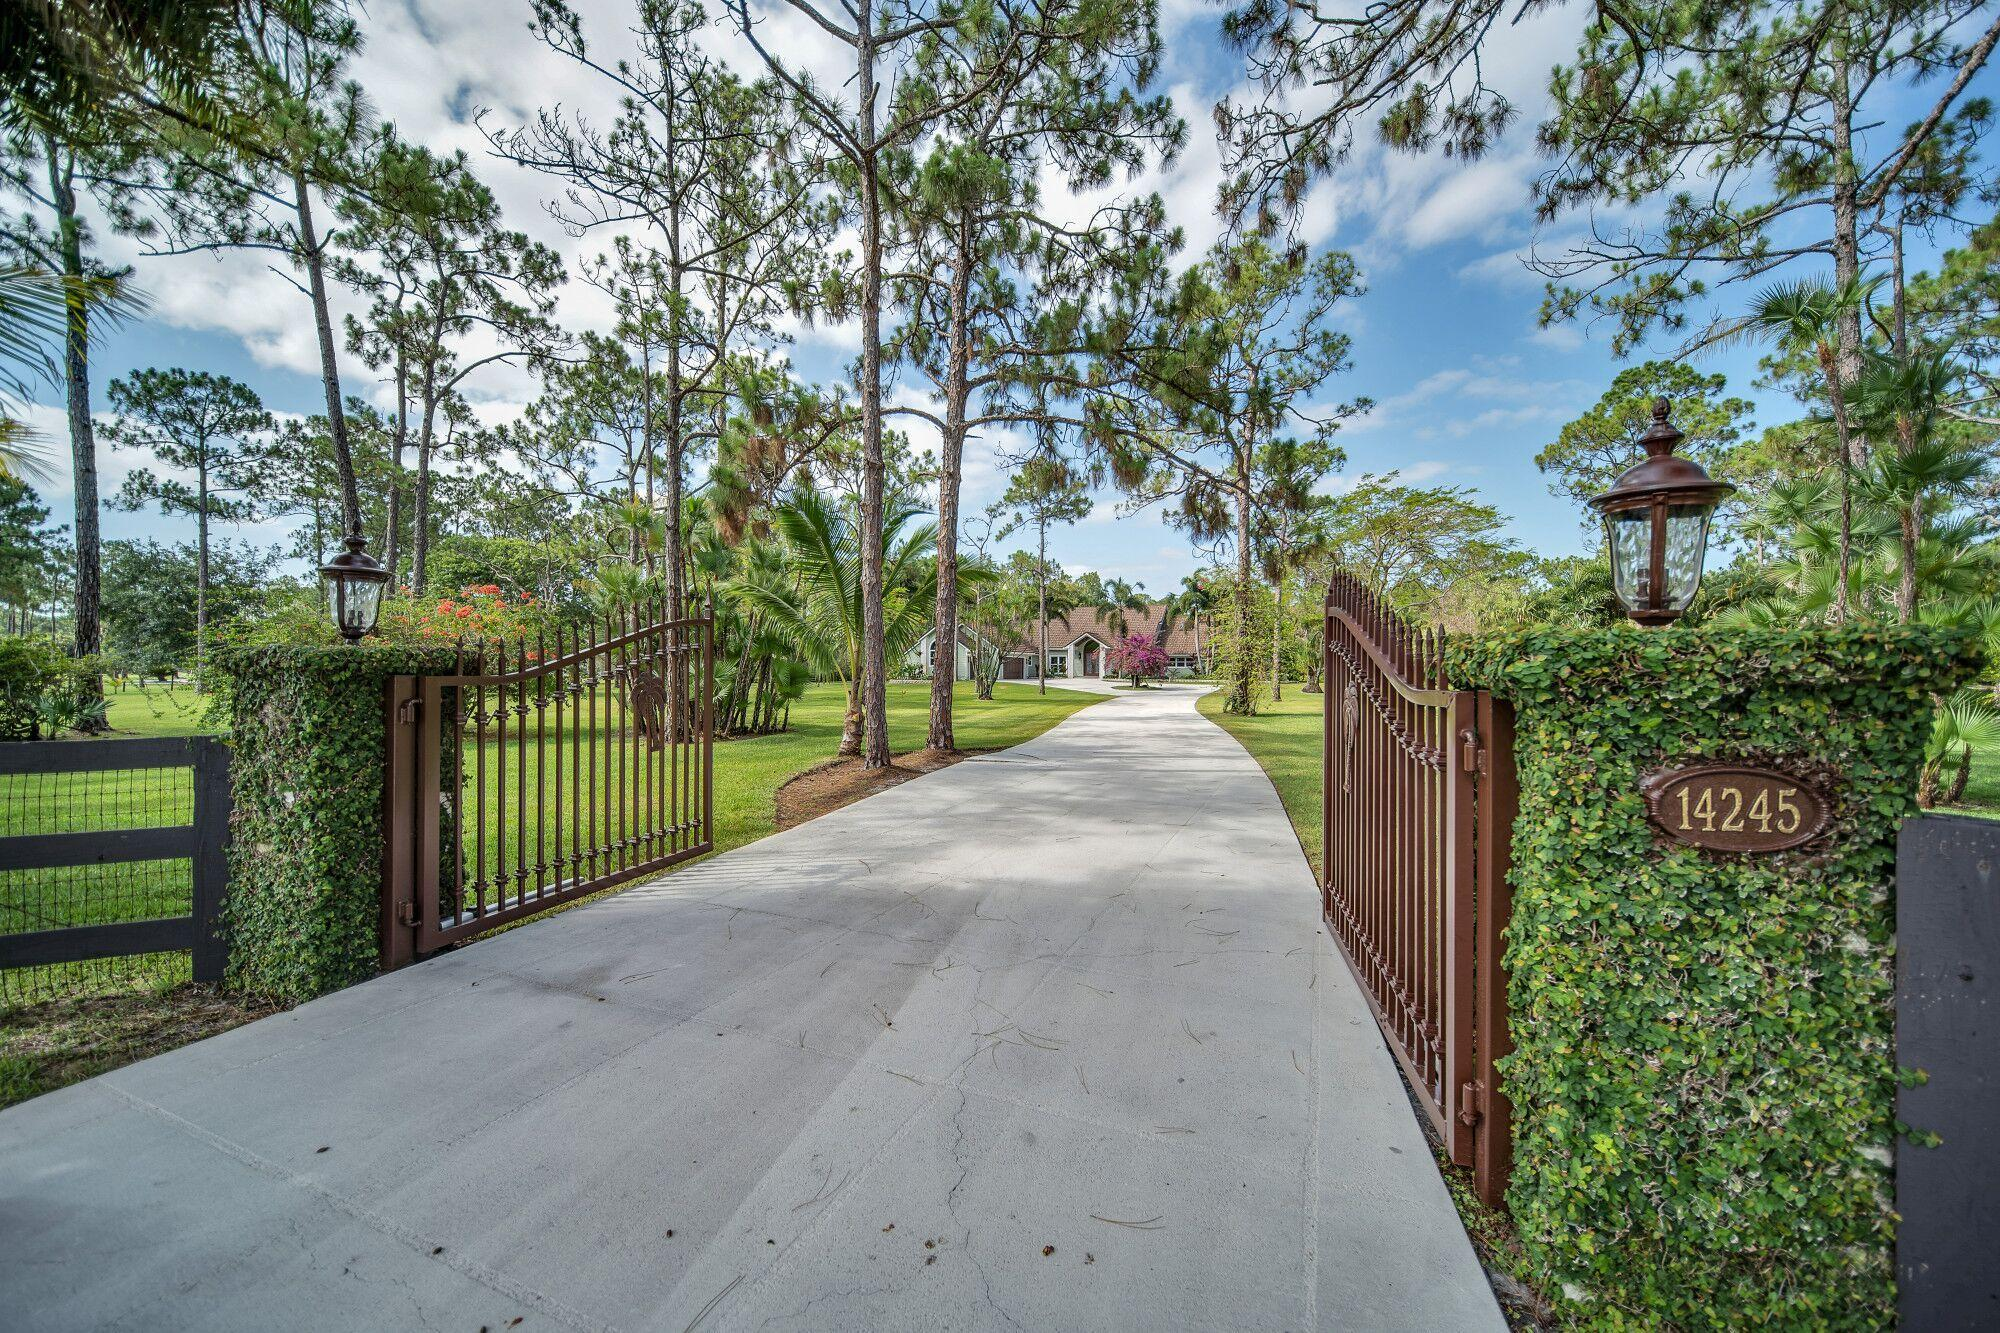 :ALL SIZES APPROX. ELEGANT AND PRIVATE 5 ACRE ESTATE, MIAMI DADE APPROVED CEMENT FIBER SIDING. HARDI PLANK COMPLIES WITH  HIGH VELOCITY HURRICANE ZONE! BEAUTIFULLY MAINTAINED AND MAGNIFICENTLY DESIGNED! UNCOMPROMISING QUALITY AND SUPERIOR WORKMANSHIP. AMAZING PANORAMIC VIEWS FROM NEARLY EVERY ROOM! PREPARED TO BE IMPRESSED BY THIS IMPECCABLY APPOINTED HOME! AS YOU ENTER THE DECORATIVE GATES YOU WILL BE IMMEDIATELY TAKEN BY THIS HORTICULTURE PARK-LIKE SETTING, MATURE FLOWERING TREES ALONG WITH A VARIETY OF SCENIC NATURE WALKS. ELEGANT YET CASUAL, THE DOUBLE ETCHED GLASS FRONT DOORS INVITE YOU INTO THE FOYER THAT PROVIDES A SNEAK PREVIEW OF WHAT THIS HOME OFFERS! FORMAL LIVING ROOM WITH STONE COLUMNS AND STONE FIREPLACE MAKE THIS A PERFECT ROOM TO INVITE COMPANY TO SIT AND VISIT. AS YOU PASS THE BUTLERS PANTRY WHICH OFFERS CUSTOM CABINETRY TO HOLD YOUR STEMWARE AS WELL AS YOUR FAVORITE BOTTLES OF WINE, YOU WILL ENTER THE GOURMET KITCHEN. THE KITCHEN IS A CHEF'S DREAM FEATURING  APPLIANCES, AN ISLAND THAT IS SURE TO BE THE FAVORITE GATHERING PLACE FOR FAMILY AND FRIENDS! CUSTOM CABINETRY GALORE,WINE COOLER, GRANITE, CUSTOM LIGHTING AND A LARGE PICTURE WINDOW OVER THE SINK. THE COZY BREAKFAST AREA LOOKS OUT ONTO YOUR RELAXING BUTTERFLY GARDEN! STONE FIREPLACE AND VAULTED WOOD CEILING ADD TO THE JOY OF THIS SUNNY BREAKFAST AREA. SPACIOUS FAMILY ROOM WITH EXPANSIVE WINDOWS. CUSTOM BUILT IN CABINETRY AND CUSTOM PLANTATION SHUTTERS. FRENCH DOORS WILL LEAD YOU TO YOUR RESORT STYLE POOL, PATIO, SUMMER KITCHEN AND CABANA. SUMMER KITCHEN HAS BEEN DESIGNED TO CAPTURE THE TRUE ESSENCE OF OUTDOOR LIVING! BUILT IN GAS GRILL, SINK,FRIDGE,LOTS OF CABINETS AND COVERED DINING AREA. FULL BATH AND OUT DOOR SHOWER ADD TO THE LUXURY OF THIS OUTDOOR AREA. TOP OF THE LINE IMPACT WINDOWS AND DOORS, ALMOST NEW METAL AND STONE ROOF. EXTENSIVE IRRIGATION SYSTEM, FOUNTAIN IN POND. YOU WILL BE AMAZED AT THE ABUNDANCE OF STORAGE AND CLOSET SPACE THIS HOME HAS TO OFFER! DON'T MISS THIS 4 BEDROOM,5.5 BATH, 3+ GARAGE POOL HOME.The wonderful community of Caloosa is an equestrian community that consists of 350 five acre home sites in Palm Beach Gardens. Fifteen minutes to Fla. Turnpike, 95 and the Gardens mall. Twenty five minutes to downtown West Palm Beach & Palm Beach International Airport. Caloosa's 32 acre horse park makes this neighborhood a real estate gem in Palm Beach County with over 30 miles of interior horse trails. Caloosa's community amenities include: dressage arena, a riding arena, jump course and a cross country area. Multiple tennis courts, children's playground, basketball courts and a barbecue area, community meeting room and restrooms. The private park is for the exclusive use of Caloosa residents and their guests. Caloosa residents enjoy events such as movie nights, chili cook offs, barbecues, holiday parades, benefit rides, demonstrations, and horse shows.